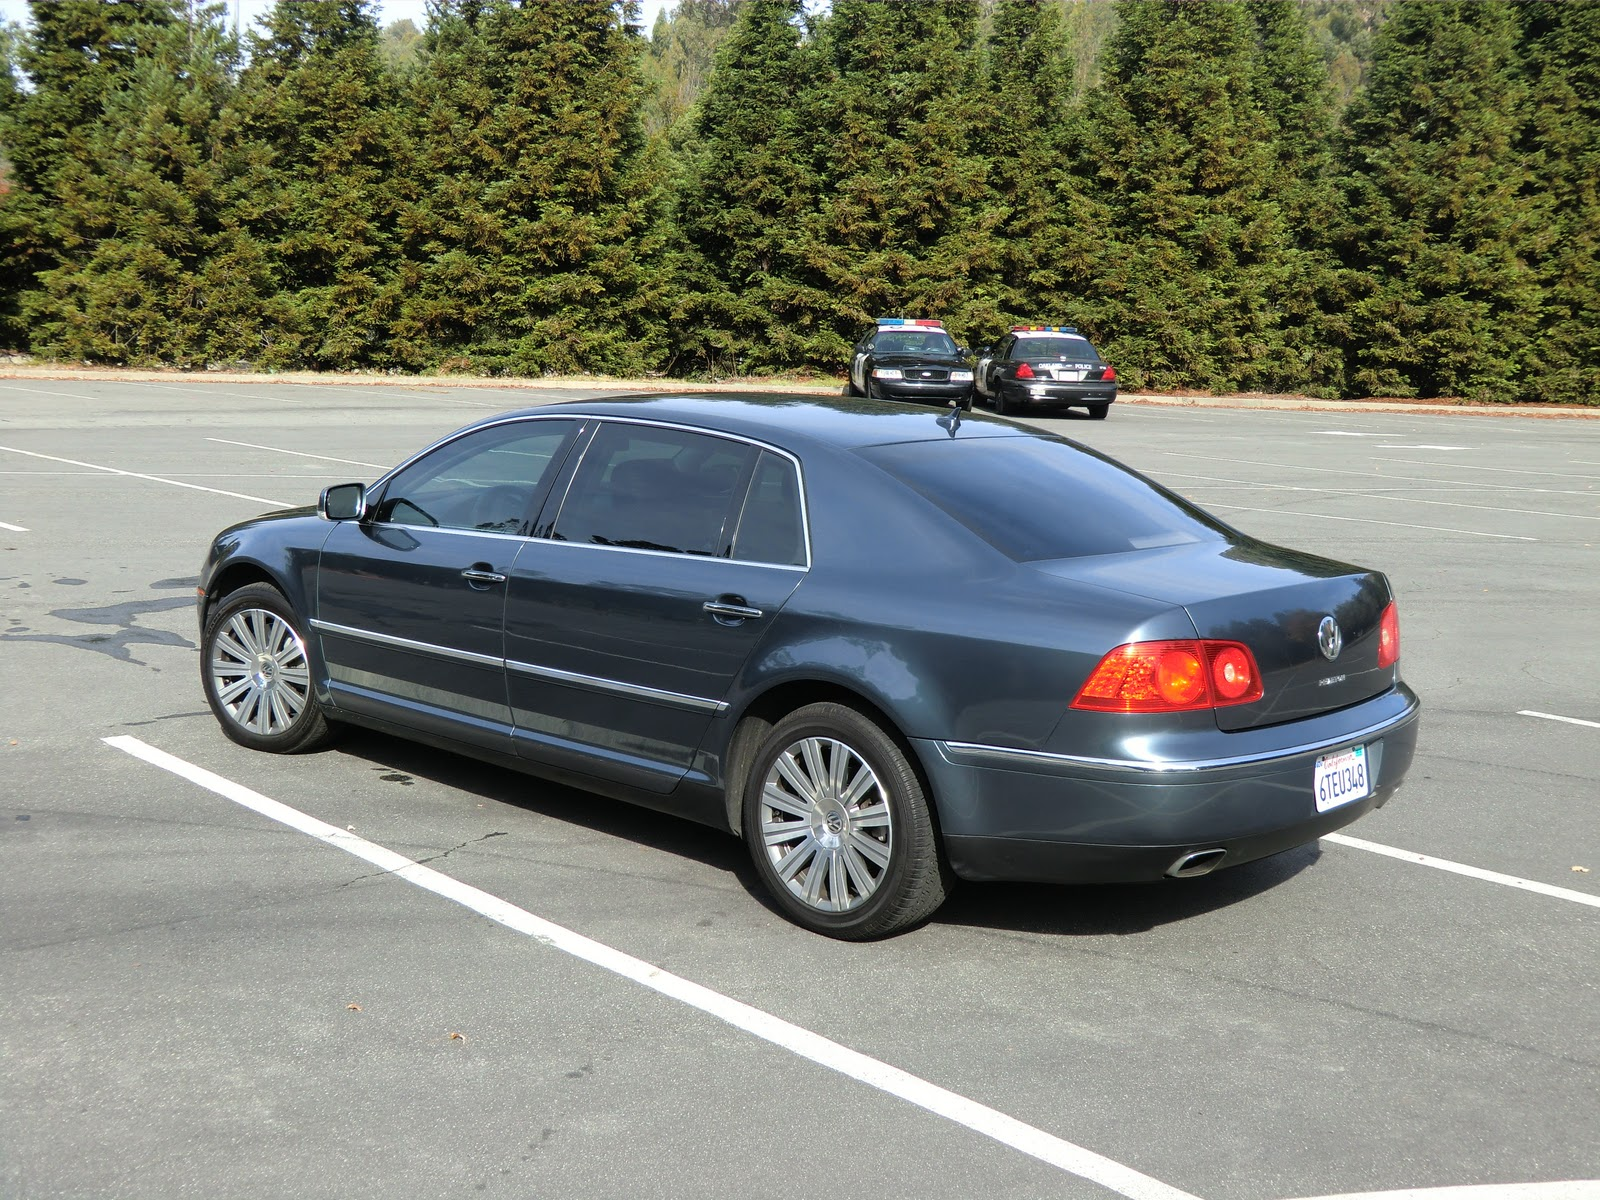 Vw phaeton v8 review impressions